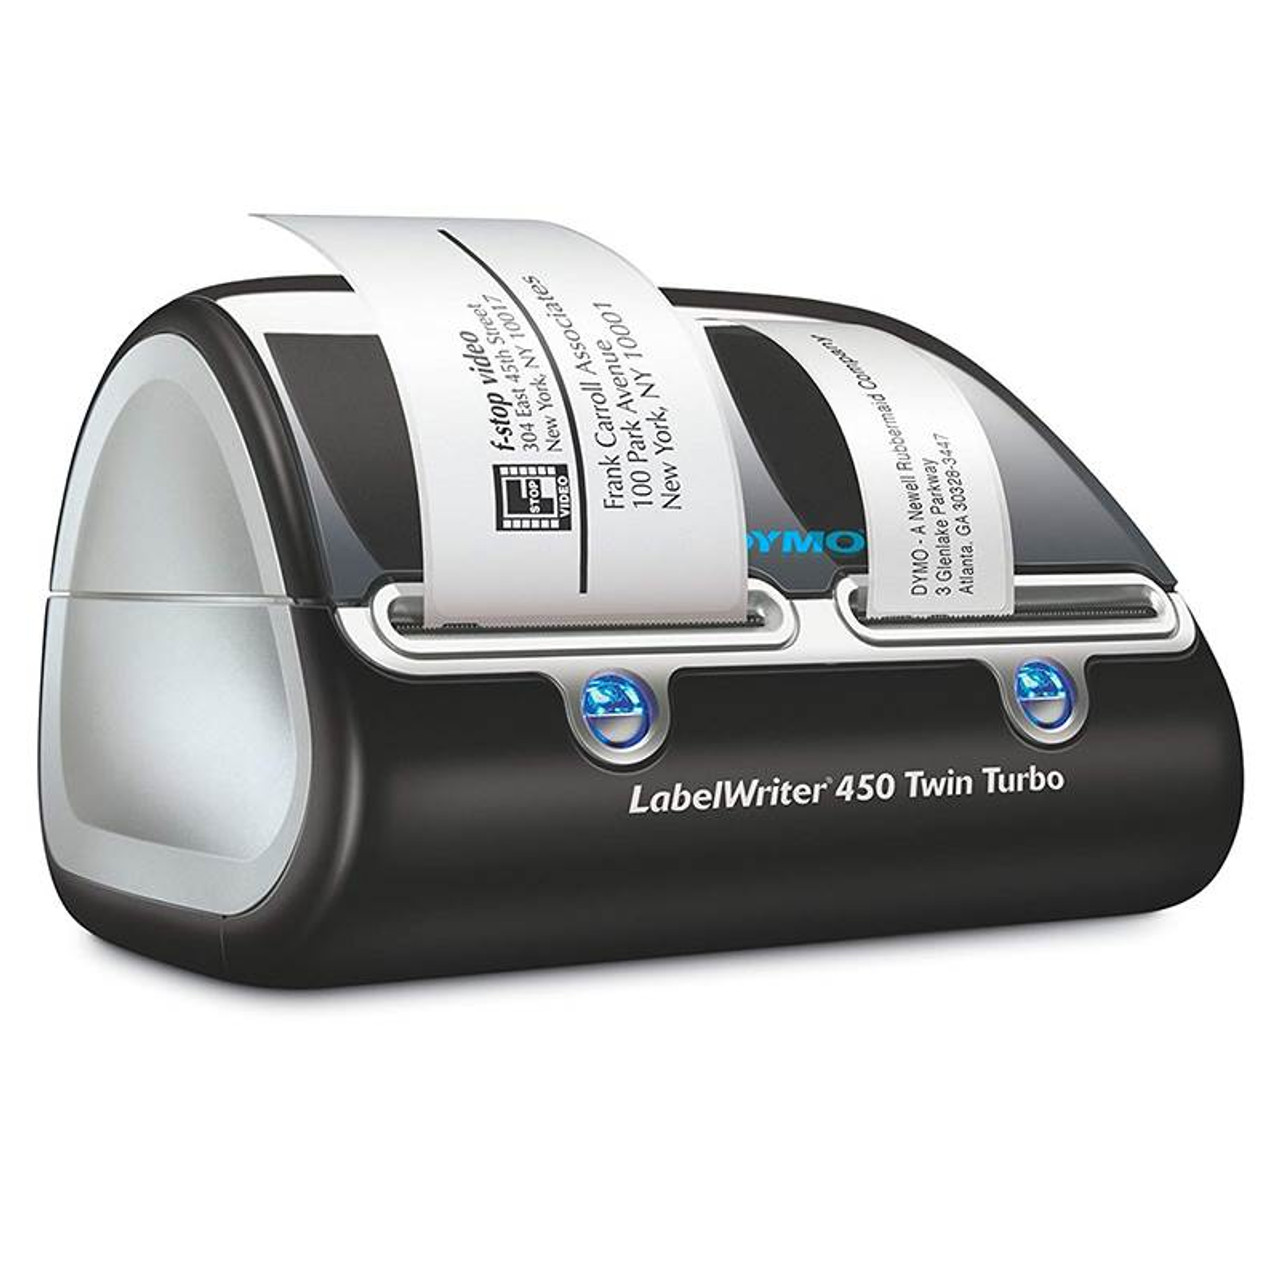 Image for Dymo LabelWriter 450 Twin Turbo Label Printer CX Computer Superstore